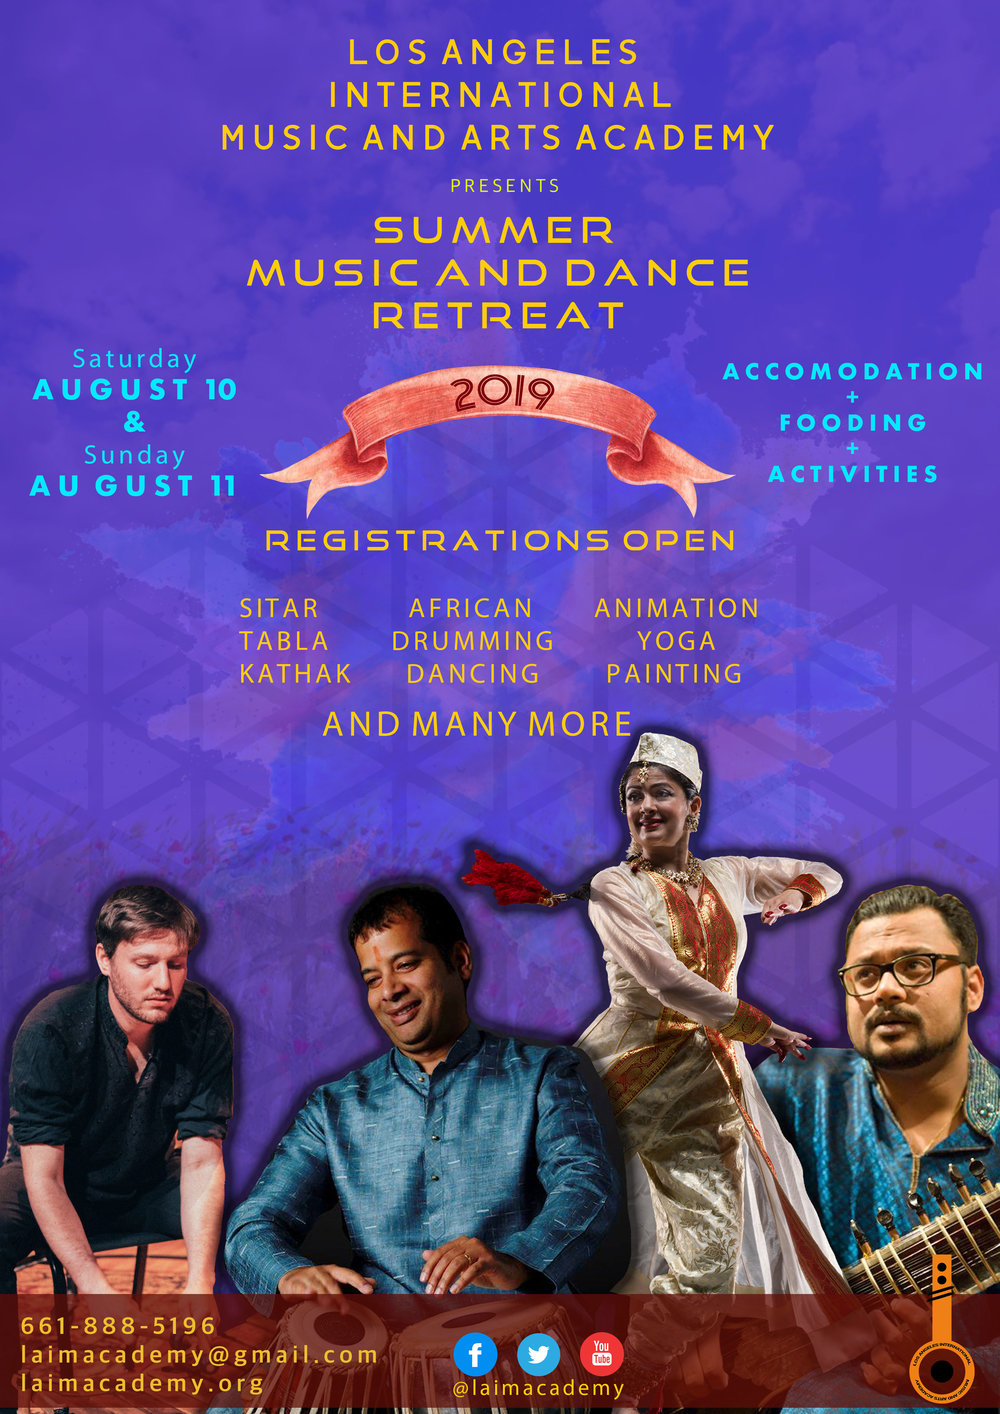 Summer Music and Dance Retreat 2019 - CHECK IN: Aug 9 after 4 pmCHECK OUT: Aug 12 before 12 pm